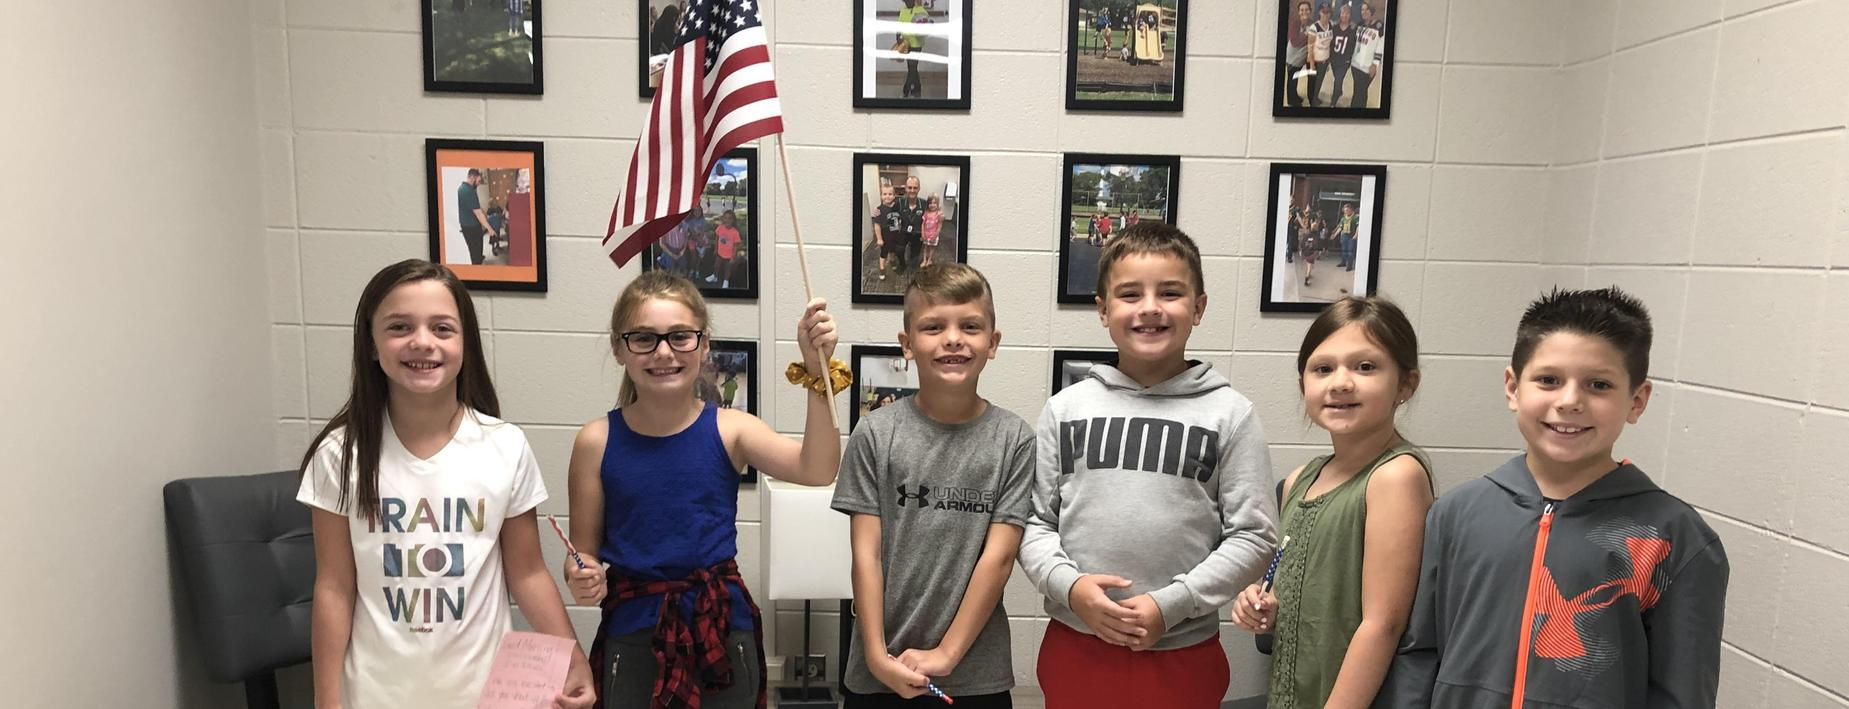 Honoring the flag at CCES